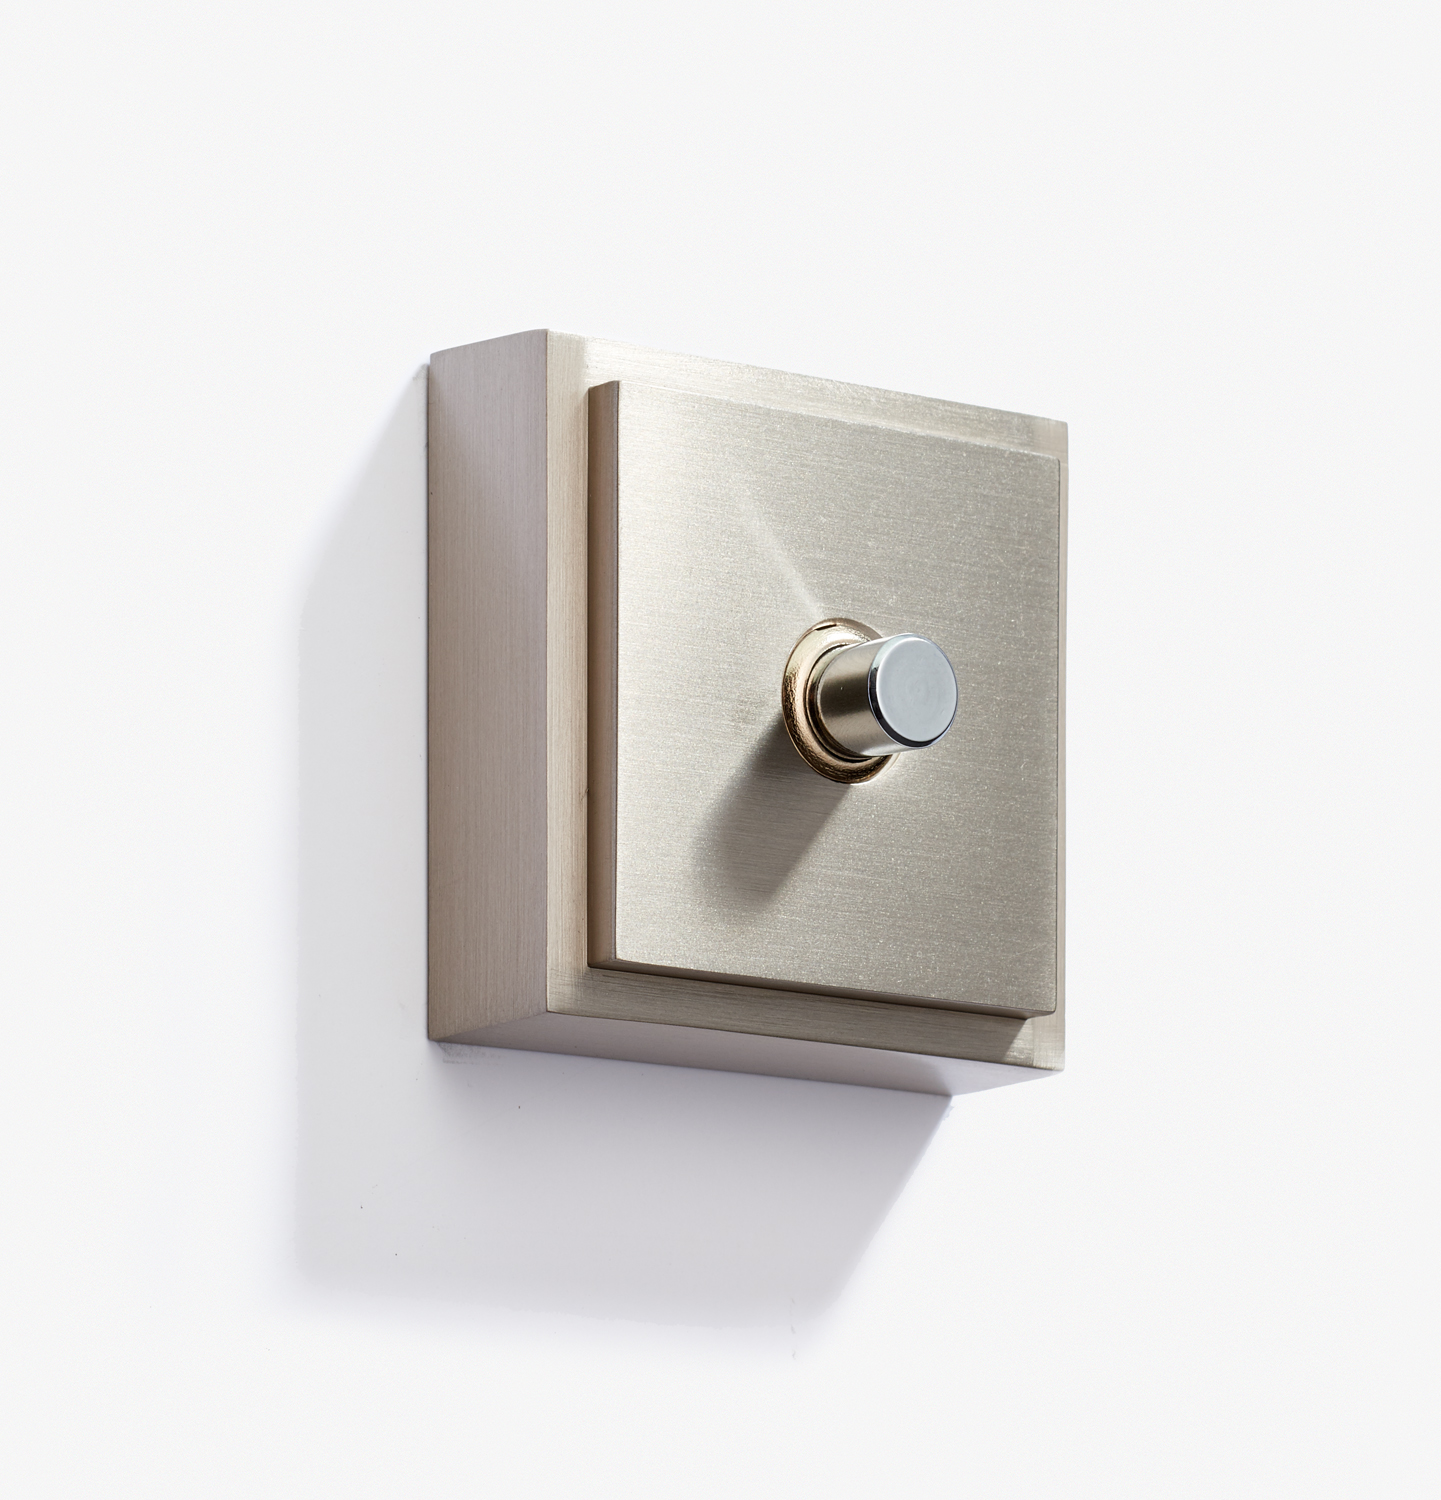 Doorbell - Carré - 1 BP 12V - Nickel Brossé 2.jpg